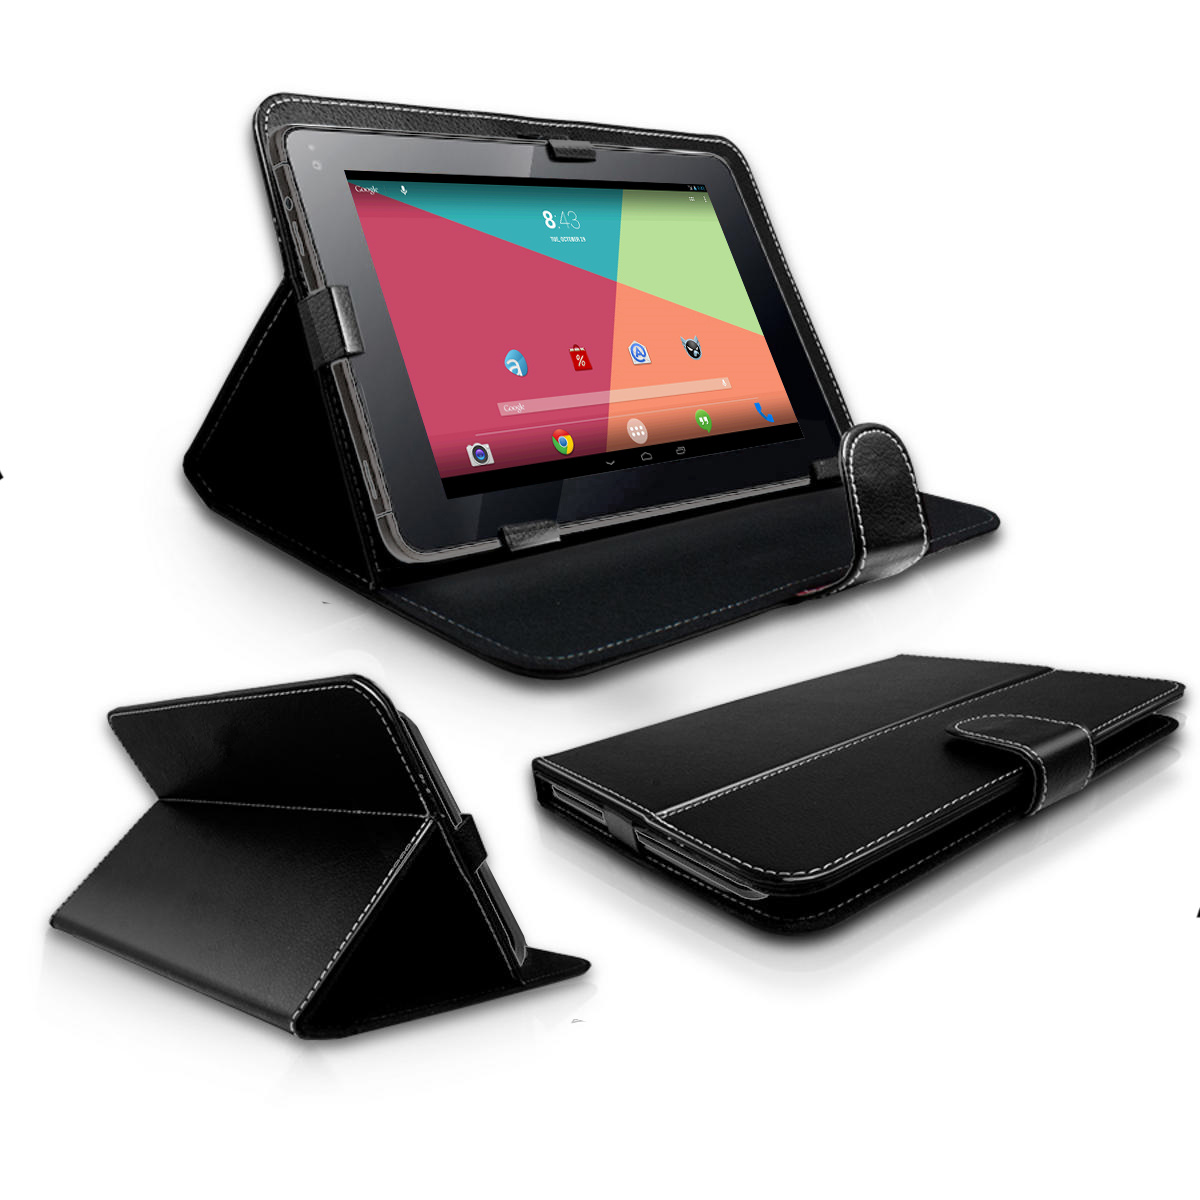 tablet-black-case.jpg